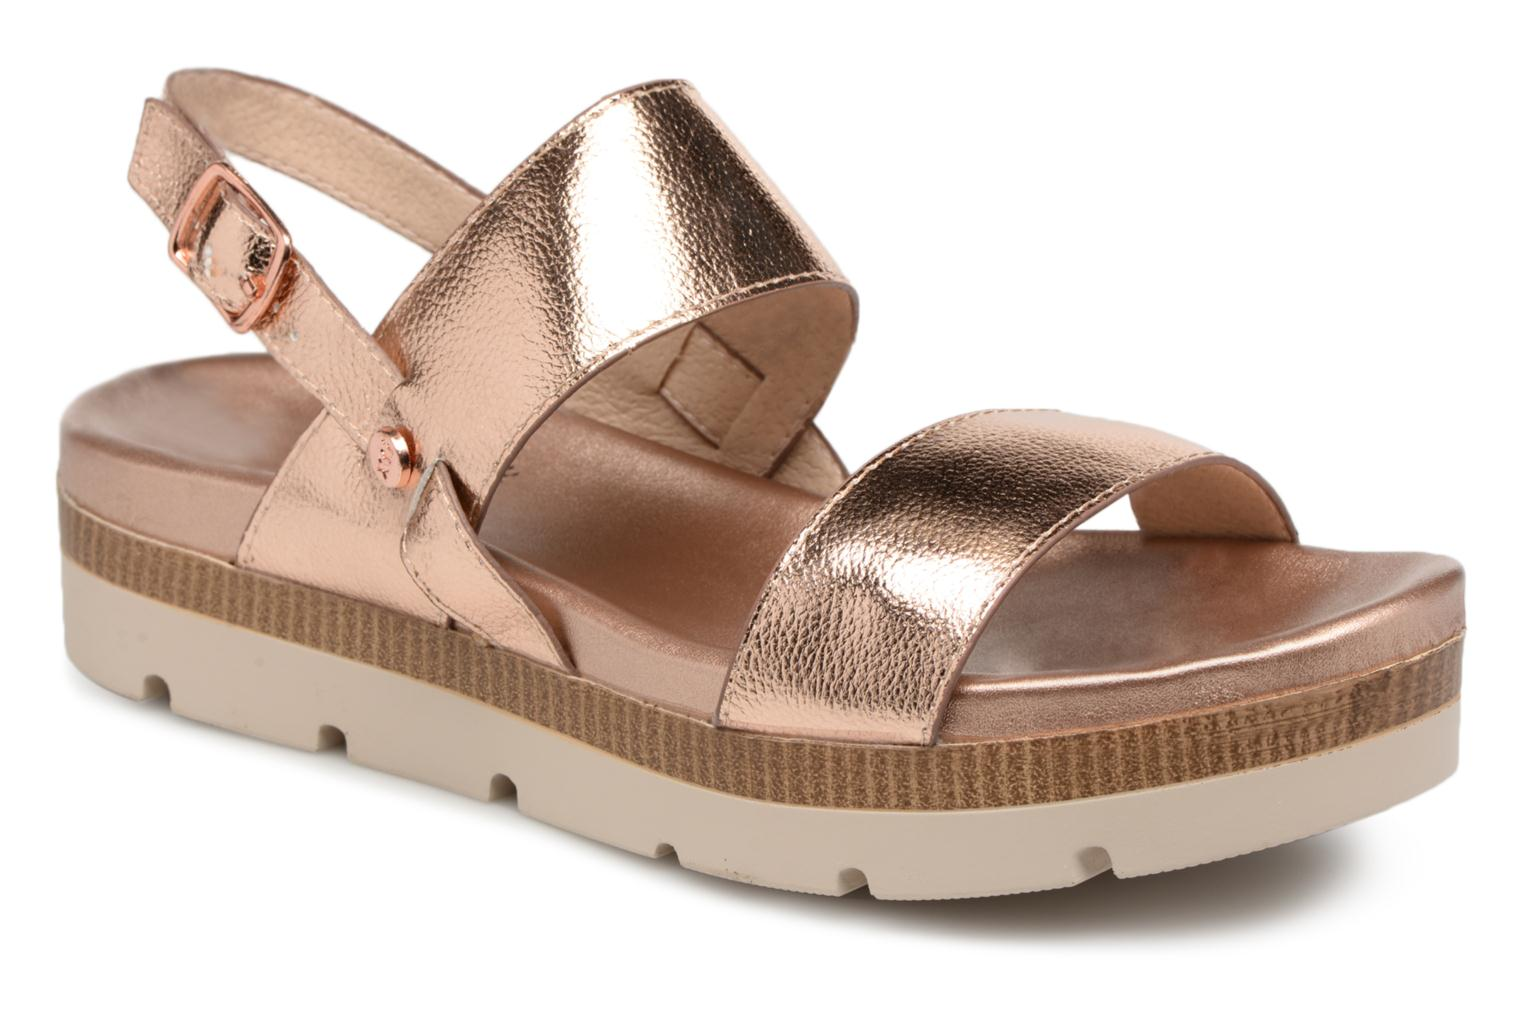 Marques Chaussure femme Xti femme 47661 Nude